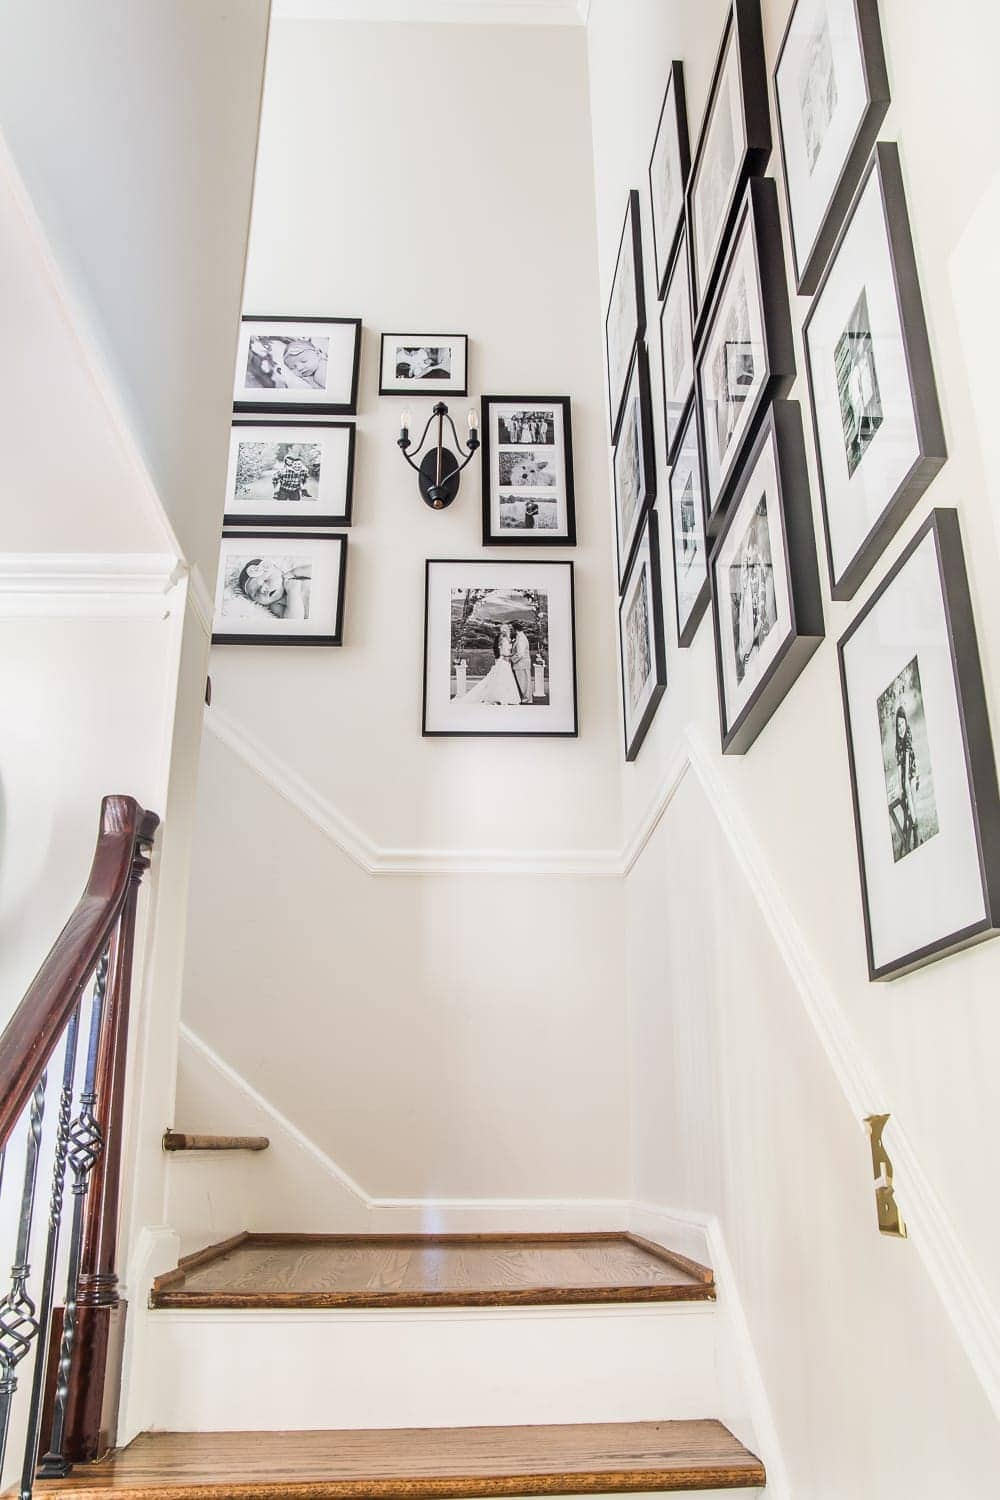 How we hung our stairway gallery wall quickly and easily without any accidental nail holes + inspiration for other gallery walls in the house. #gallerywall #stairwaygallerywall #familygallerywall #staircasegallerywall #foyer #entryway